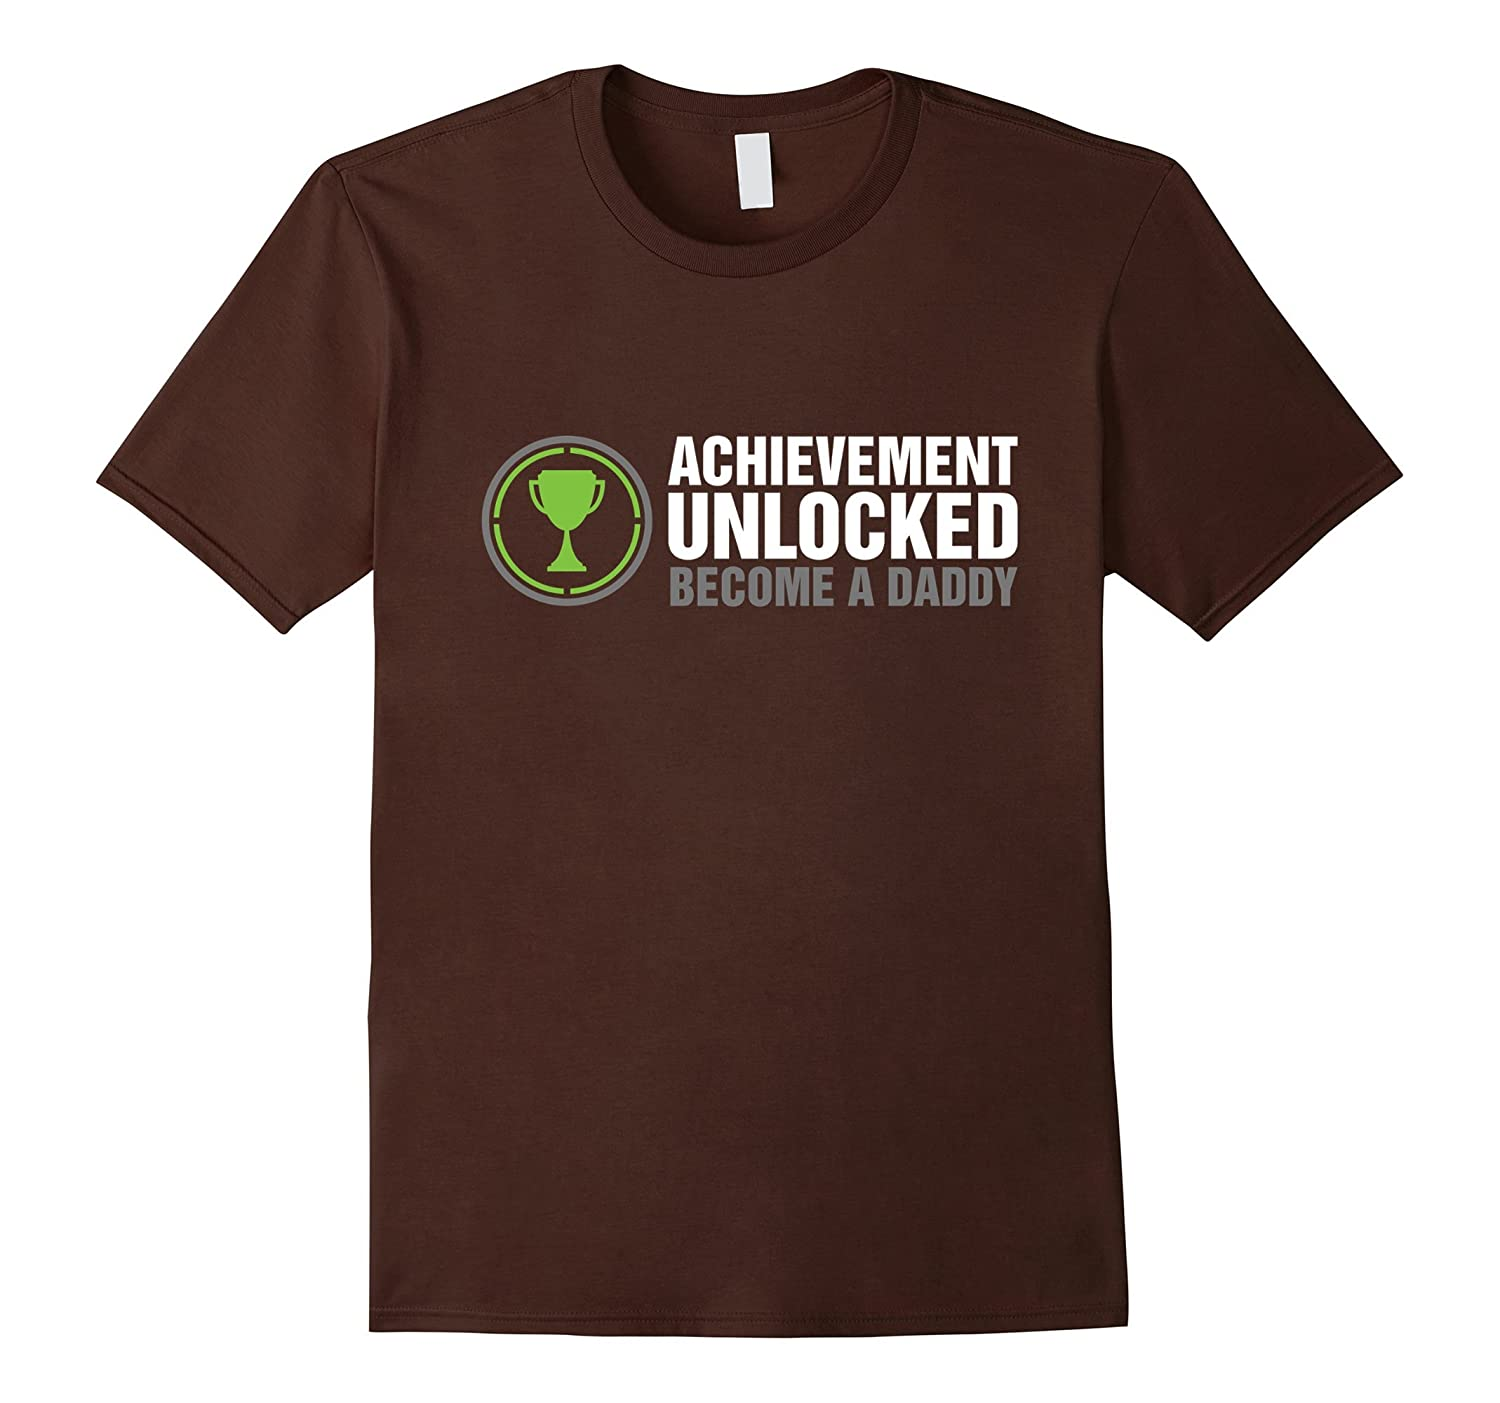 Achievement Unlocked Shirt  Become A Daddy-TH